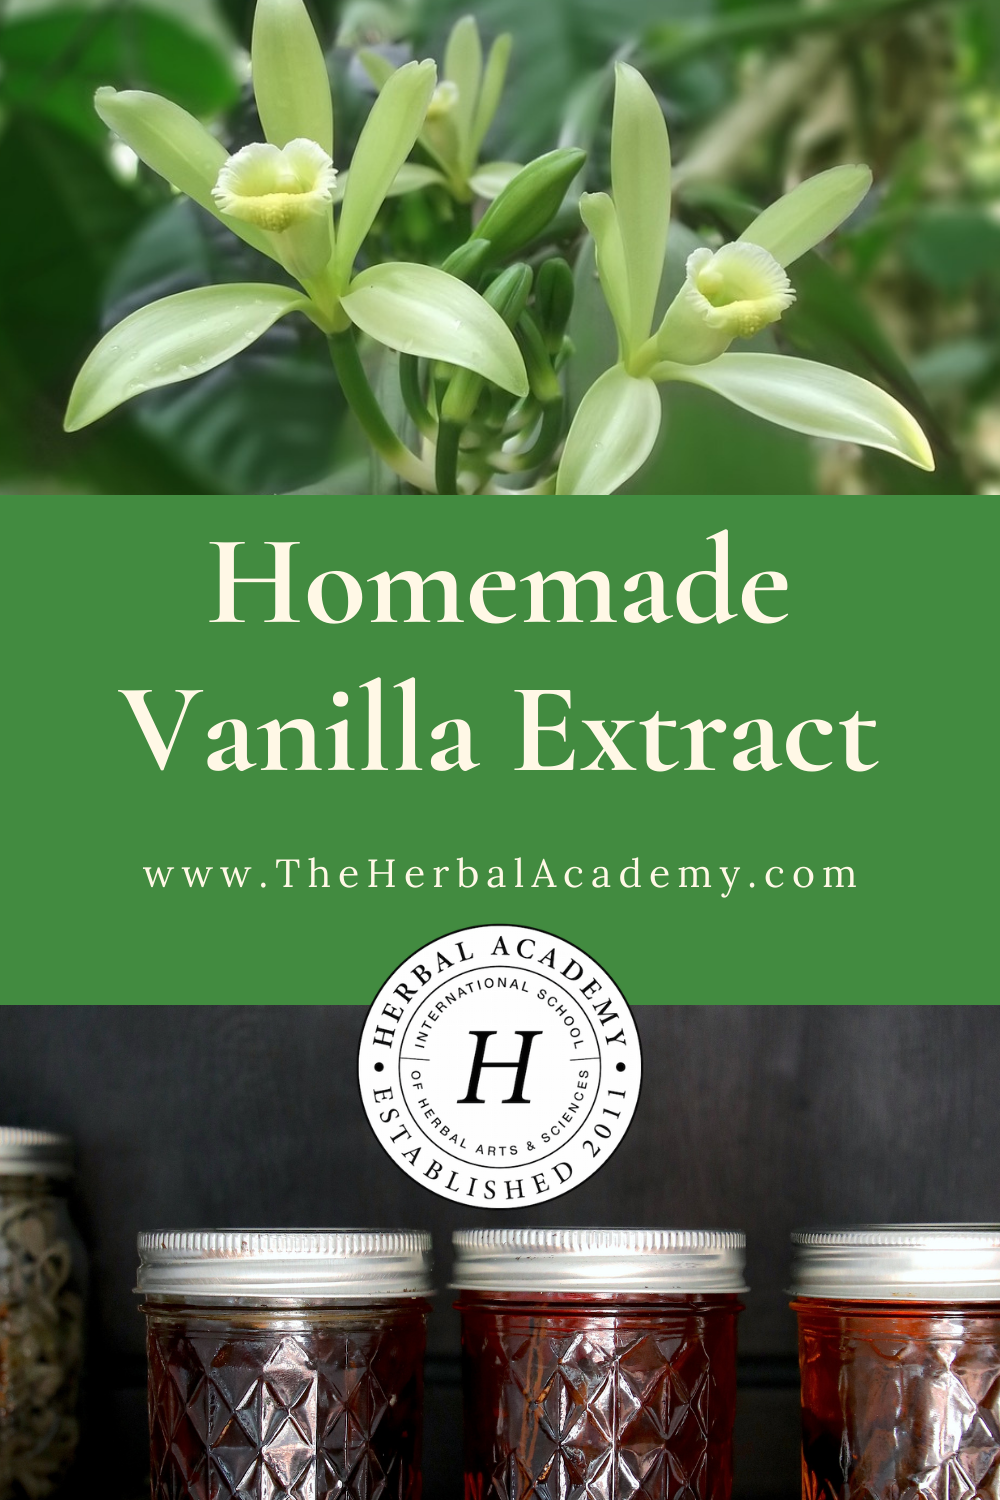 Homemade Vanilla Extract | Herbal Academy | Homemade vanilla extract adds its perfumed, complex flavor to hot and cold drinks, baked goods, confections, smoothies, yogurt, and more.